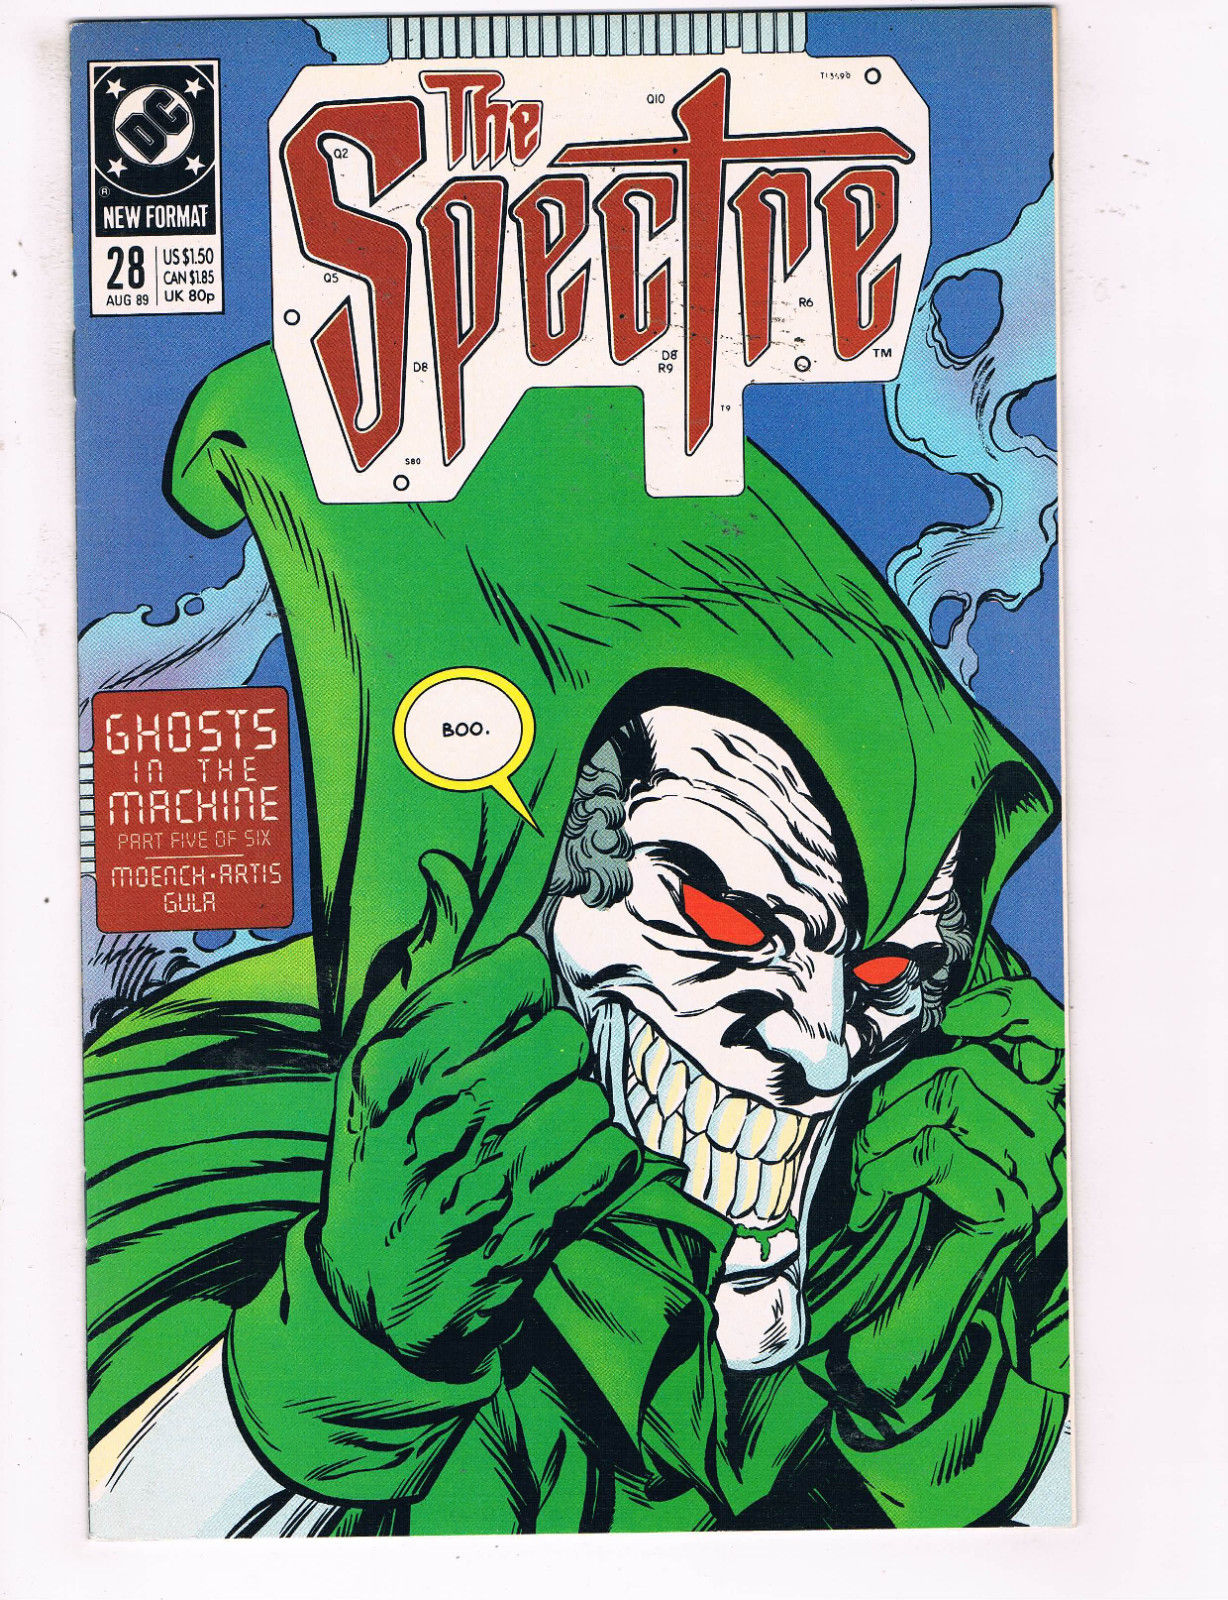 The Spectre #28 August 1989 DC Comics